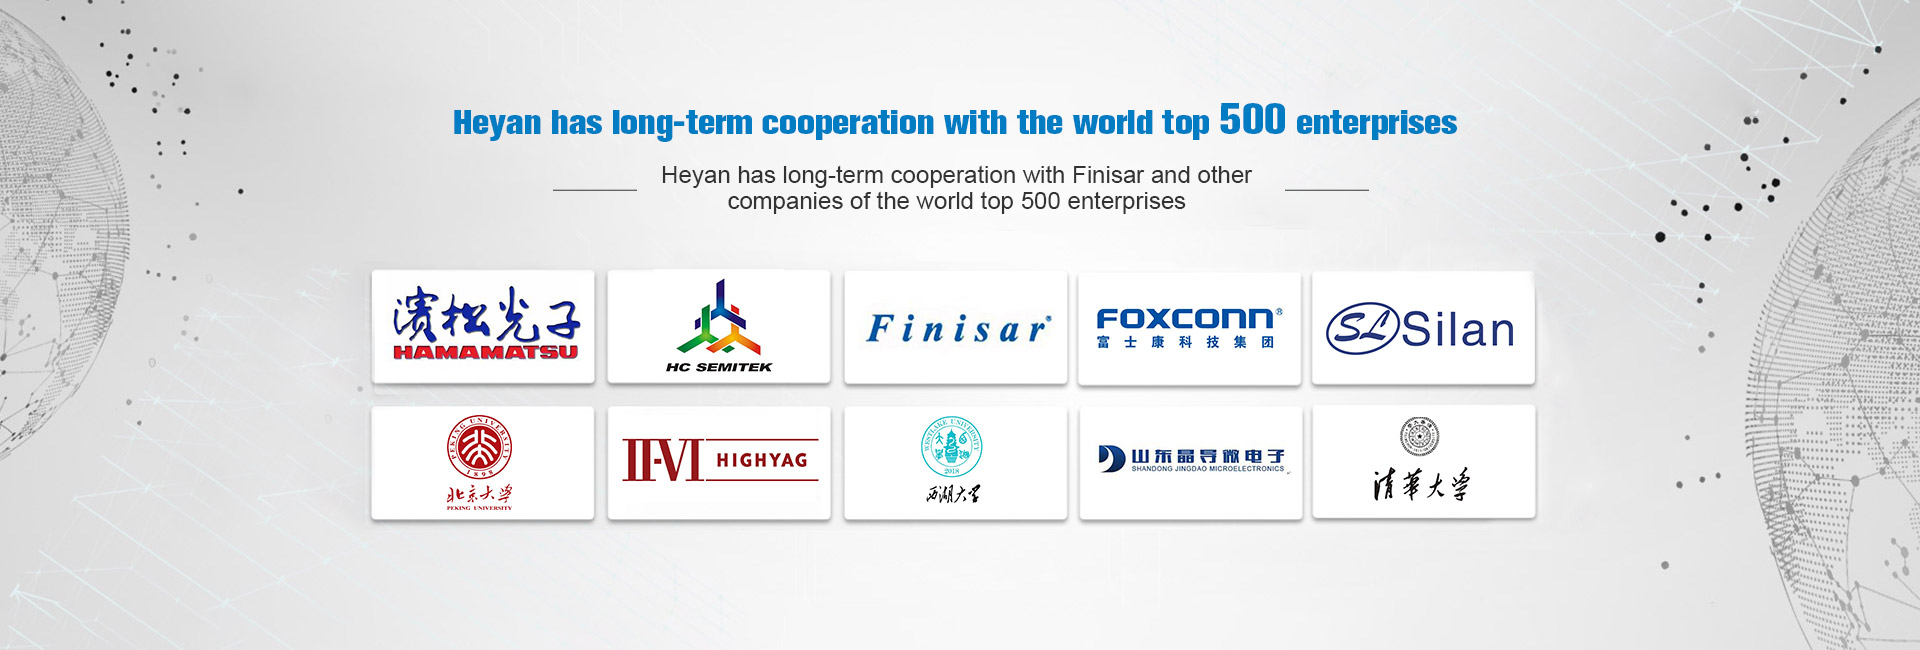 Heyan has long-term cooperation with Finisar and other companies of the world top 500 enterprises